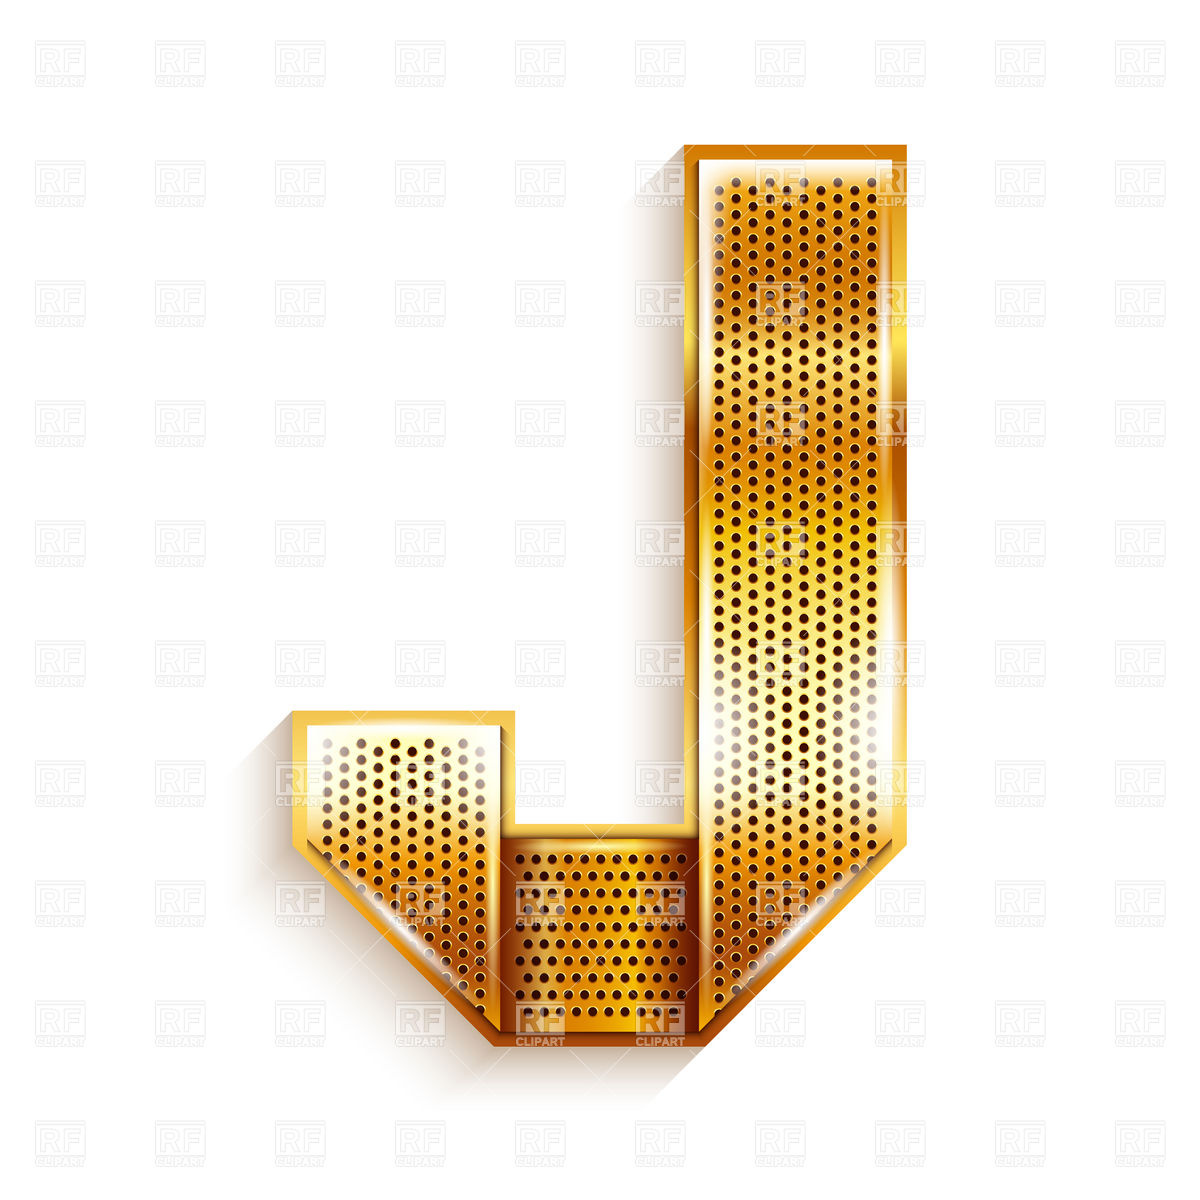 1200x1200 Alphabet Made Of Golden Perforated Tape, Letter J Vector Image